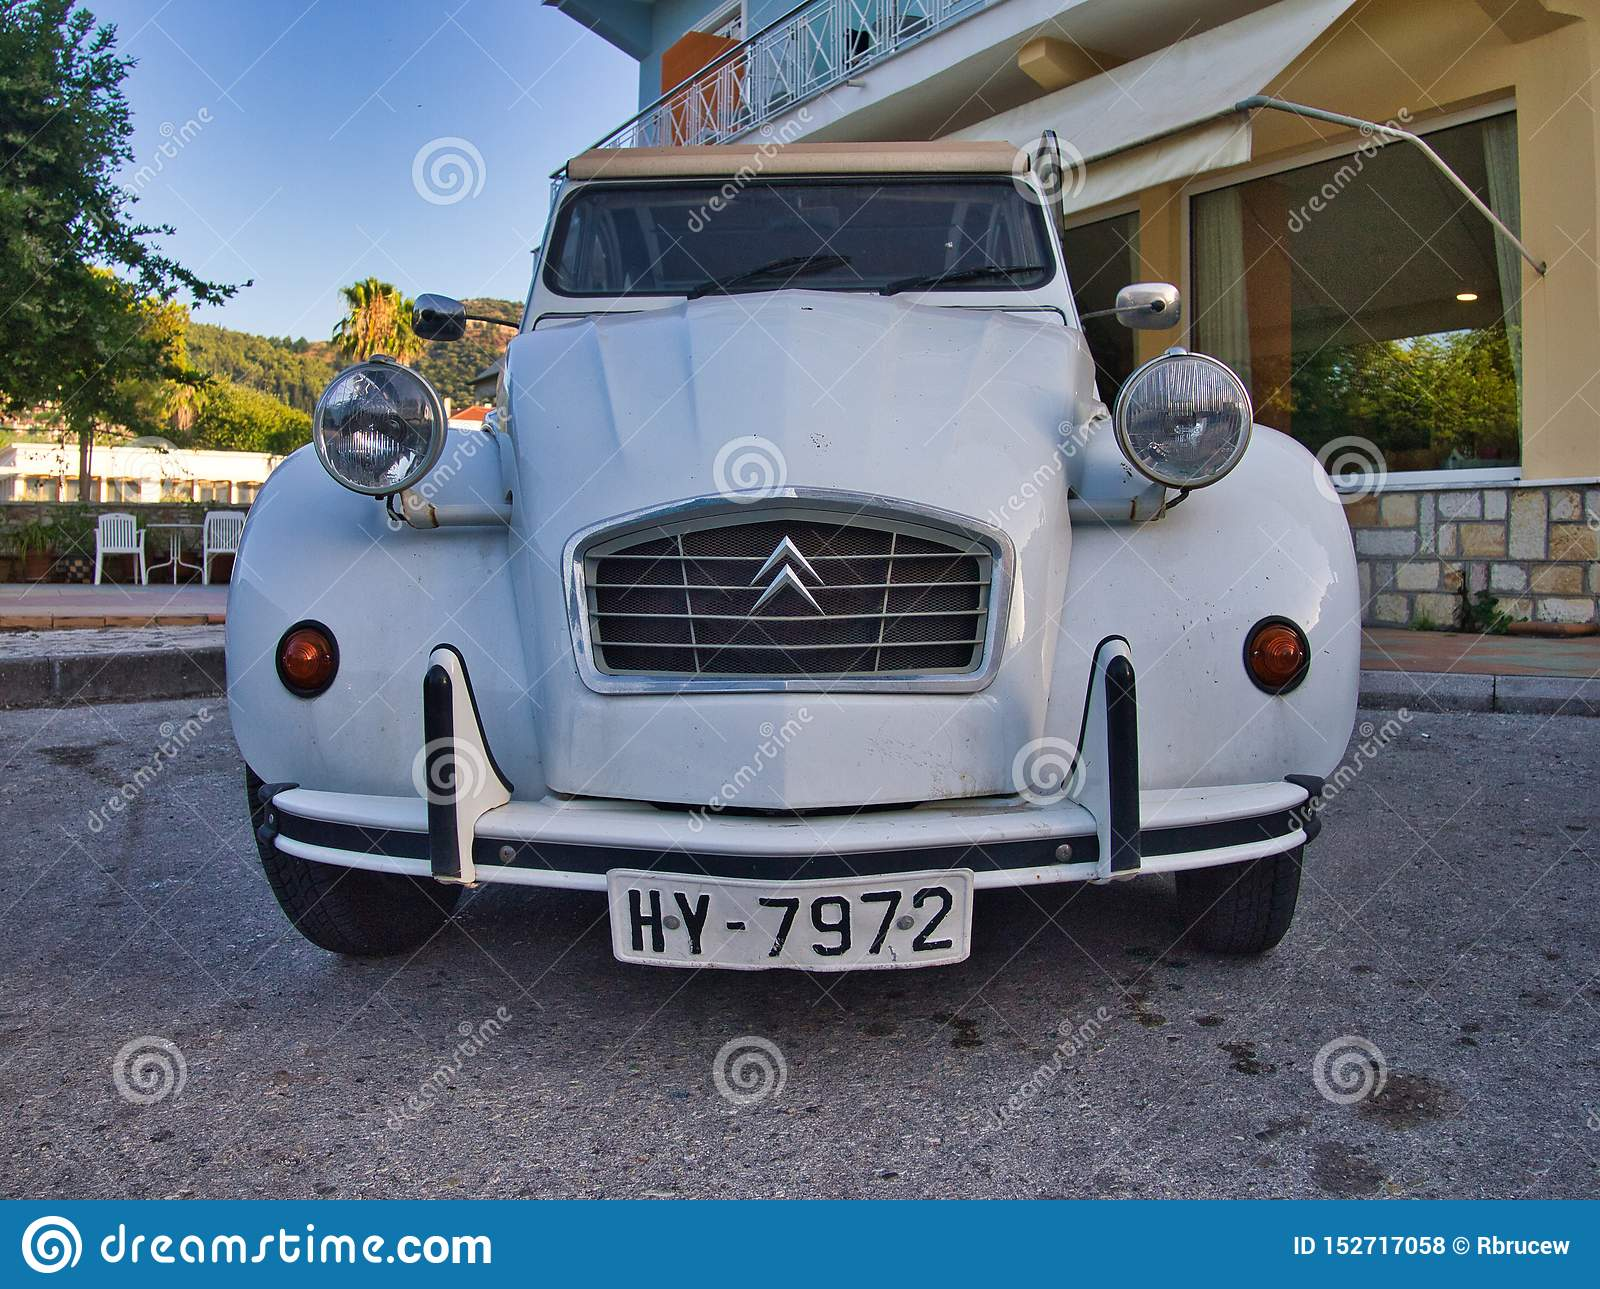 Vintage Citroen 2CV Car Parked on Side of Road